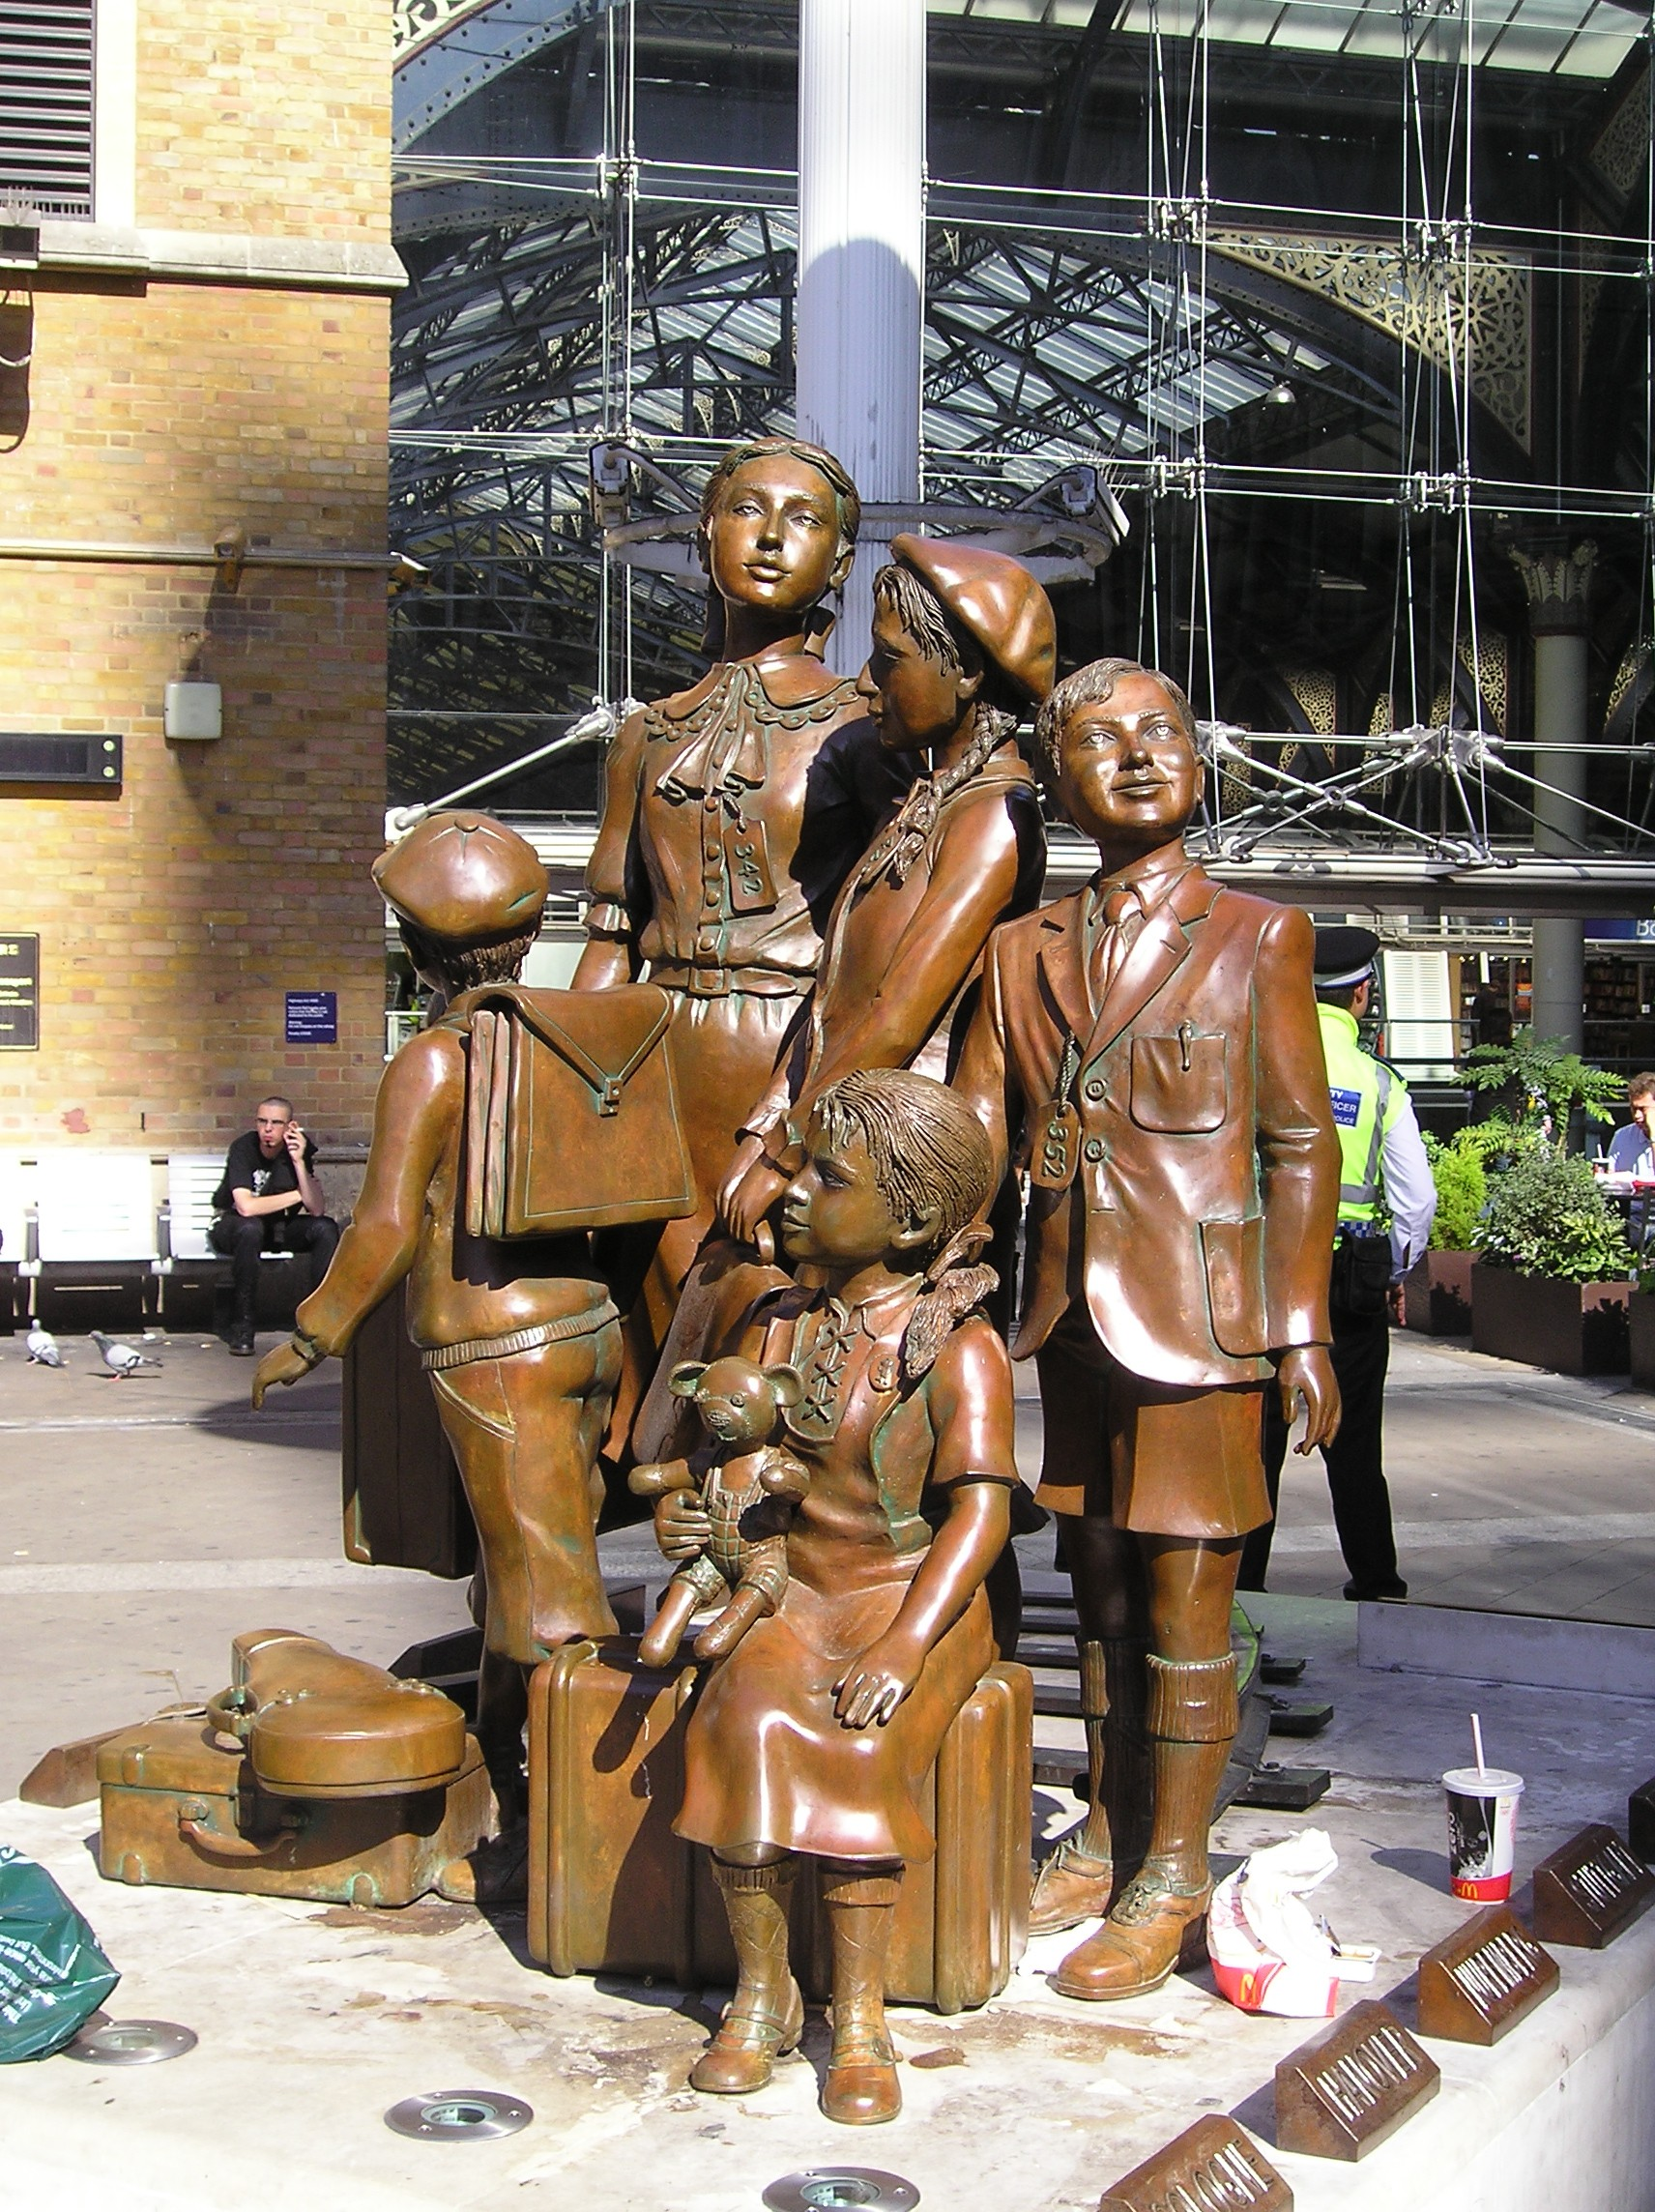 facts for kindertransport Child survivors of the holocaust in november 1938, following the night of brutal attacks on jewish homes across germany known as kristallnacht ursula adler, anne berkovitz, harry bibring and helga carden came to britain on the kindertransport.